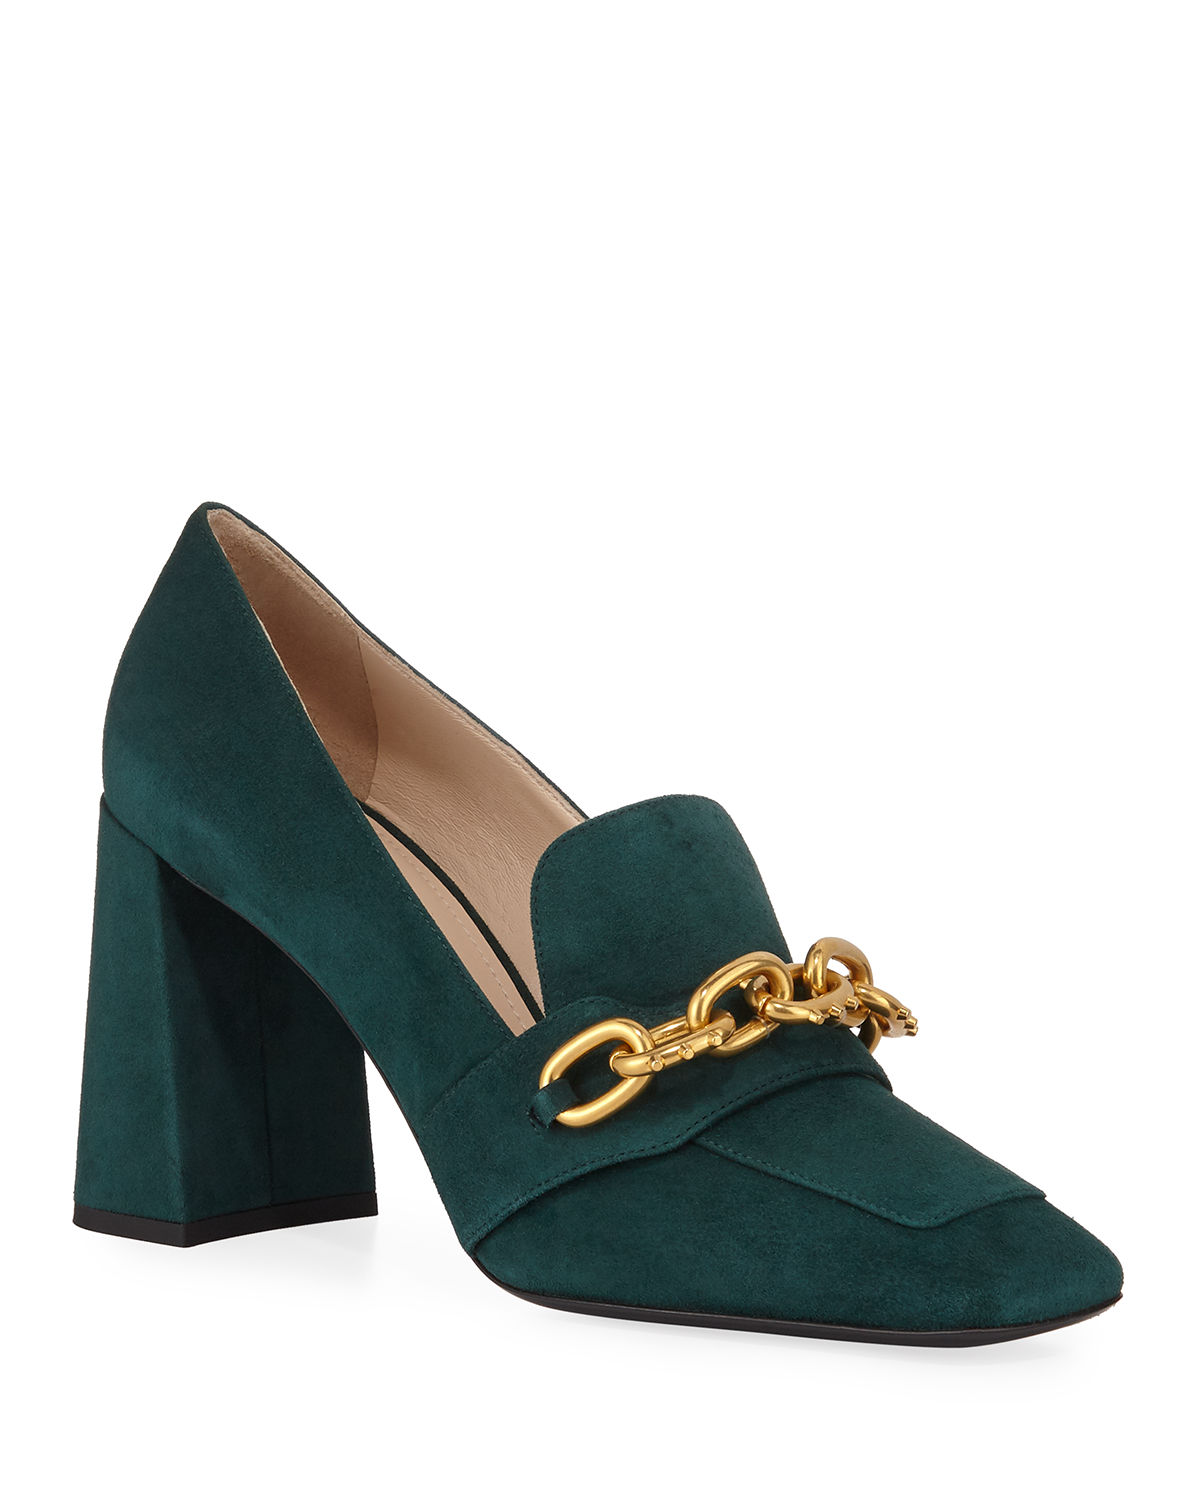 Prada Loafers SUEDE LOAFER-STYLE PUMPS